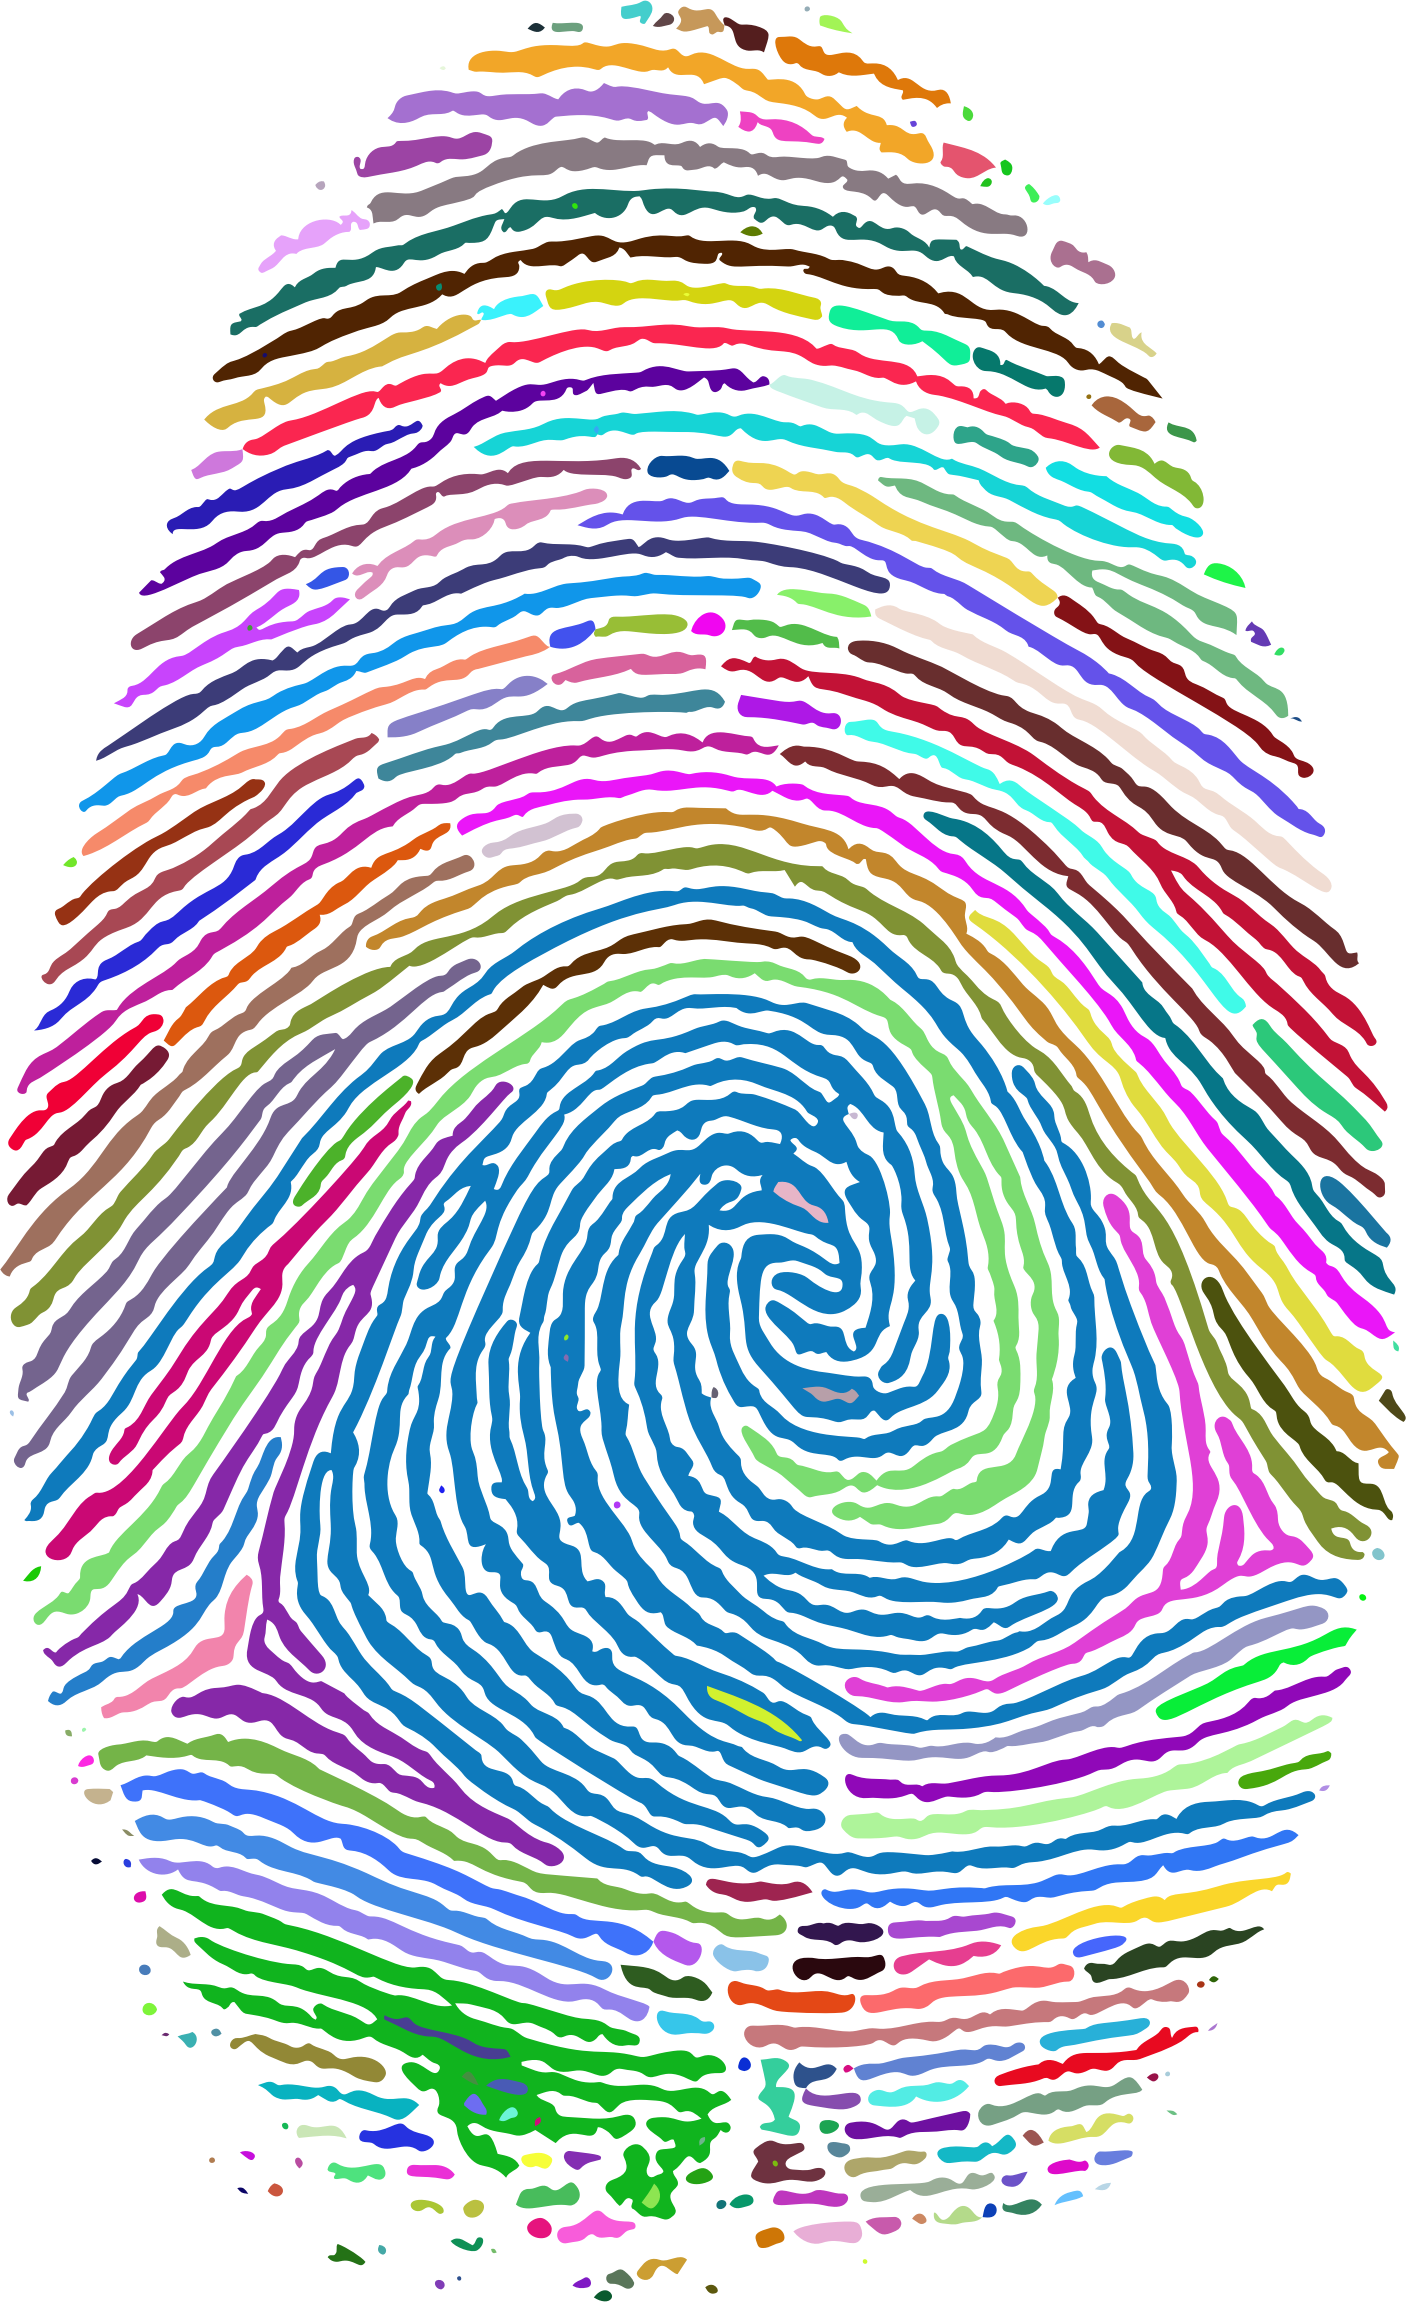 Prismatic Fingerprint by GDJ